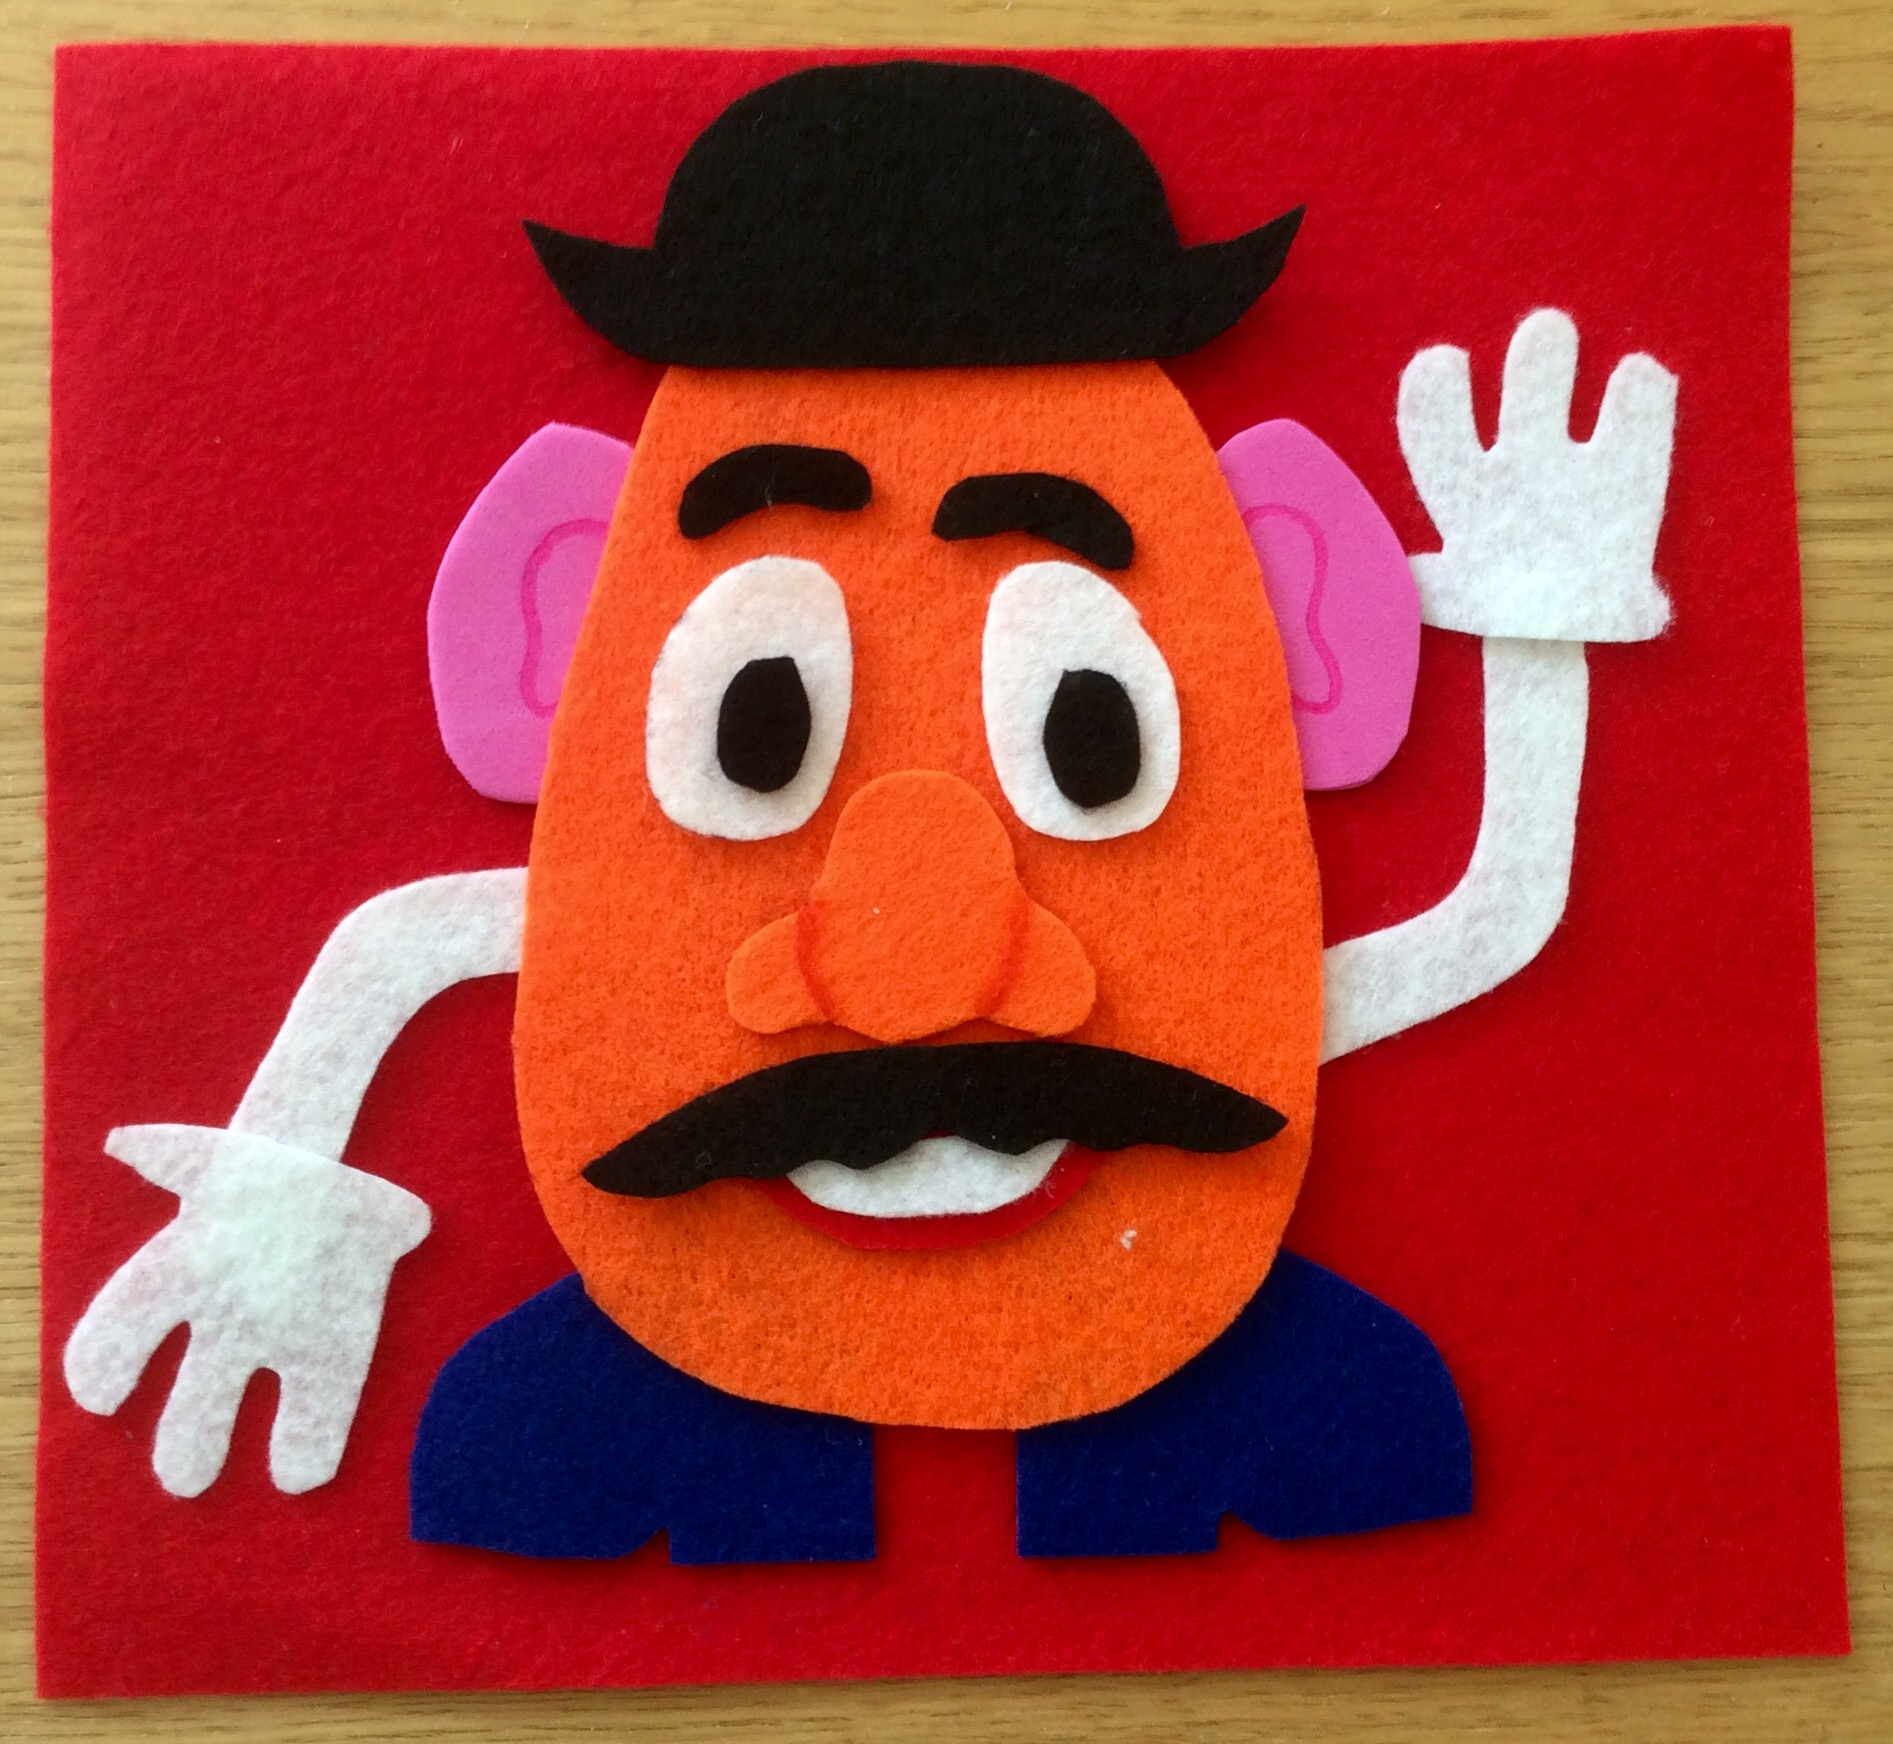 How to make a fuzzy felt card: